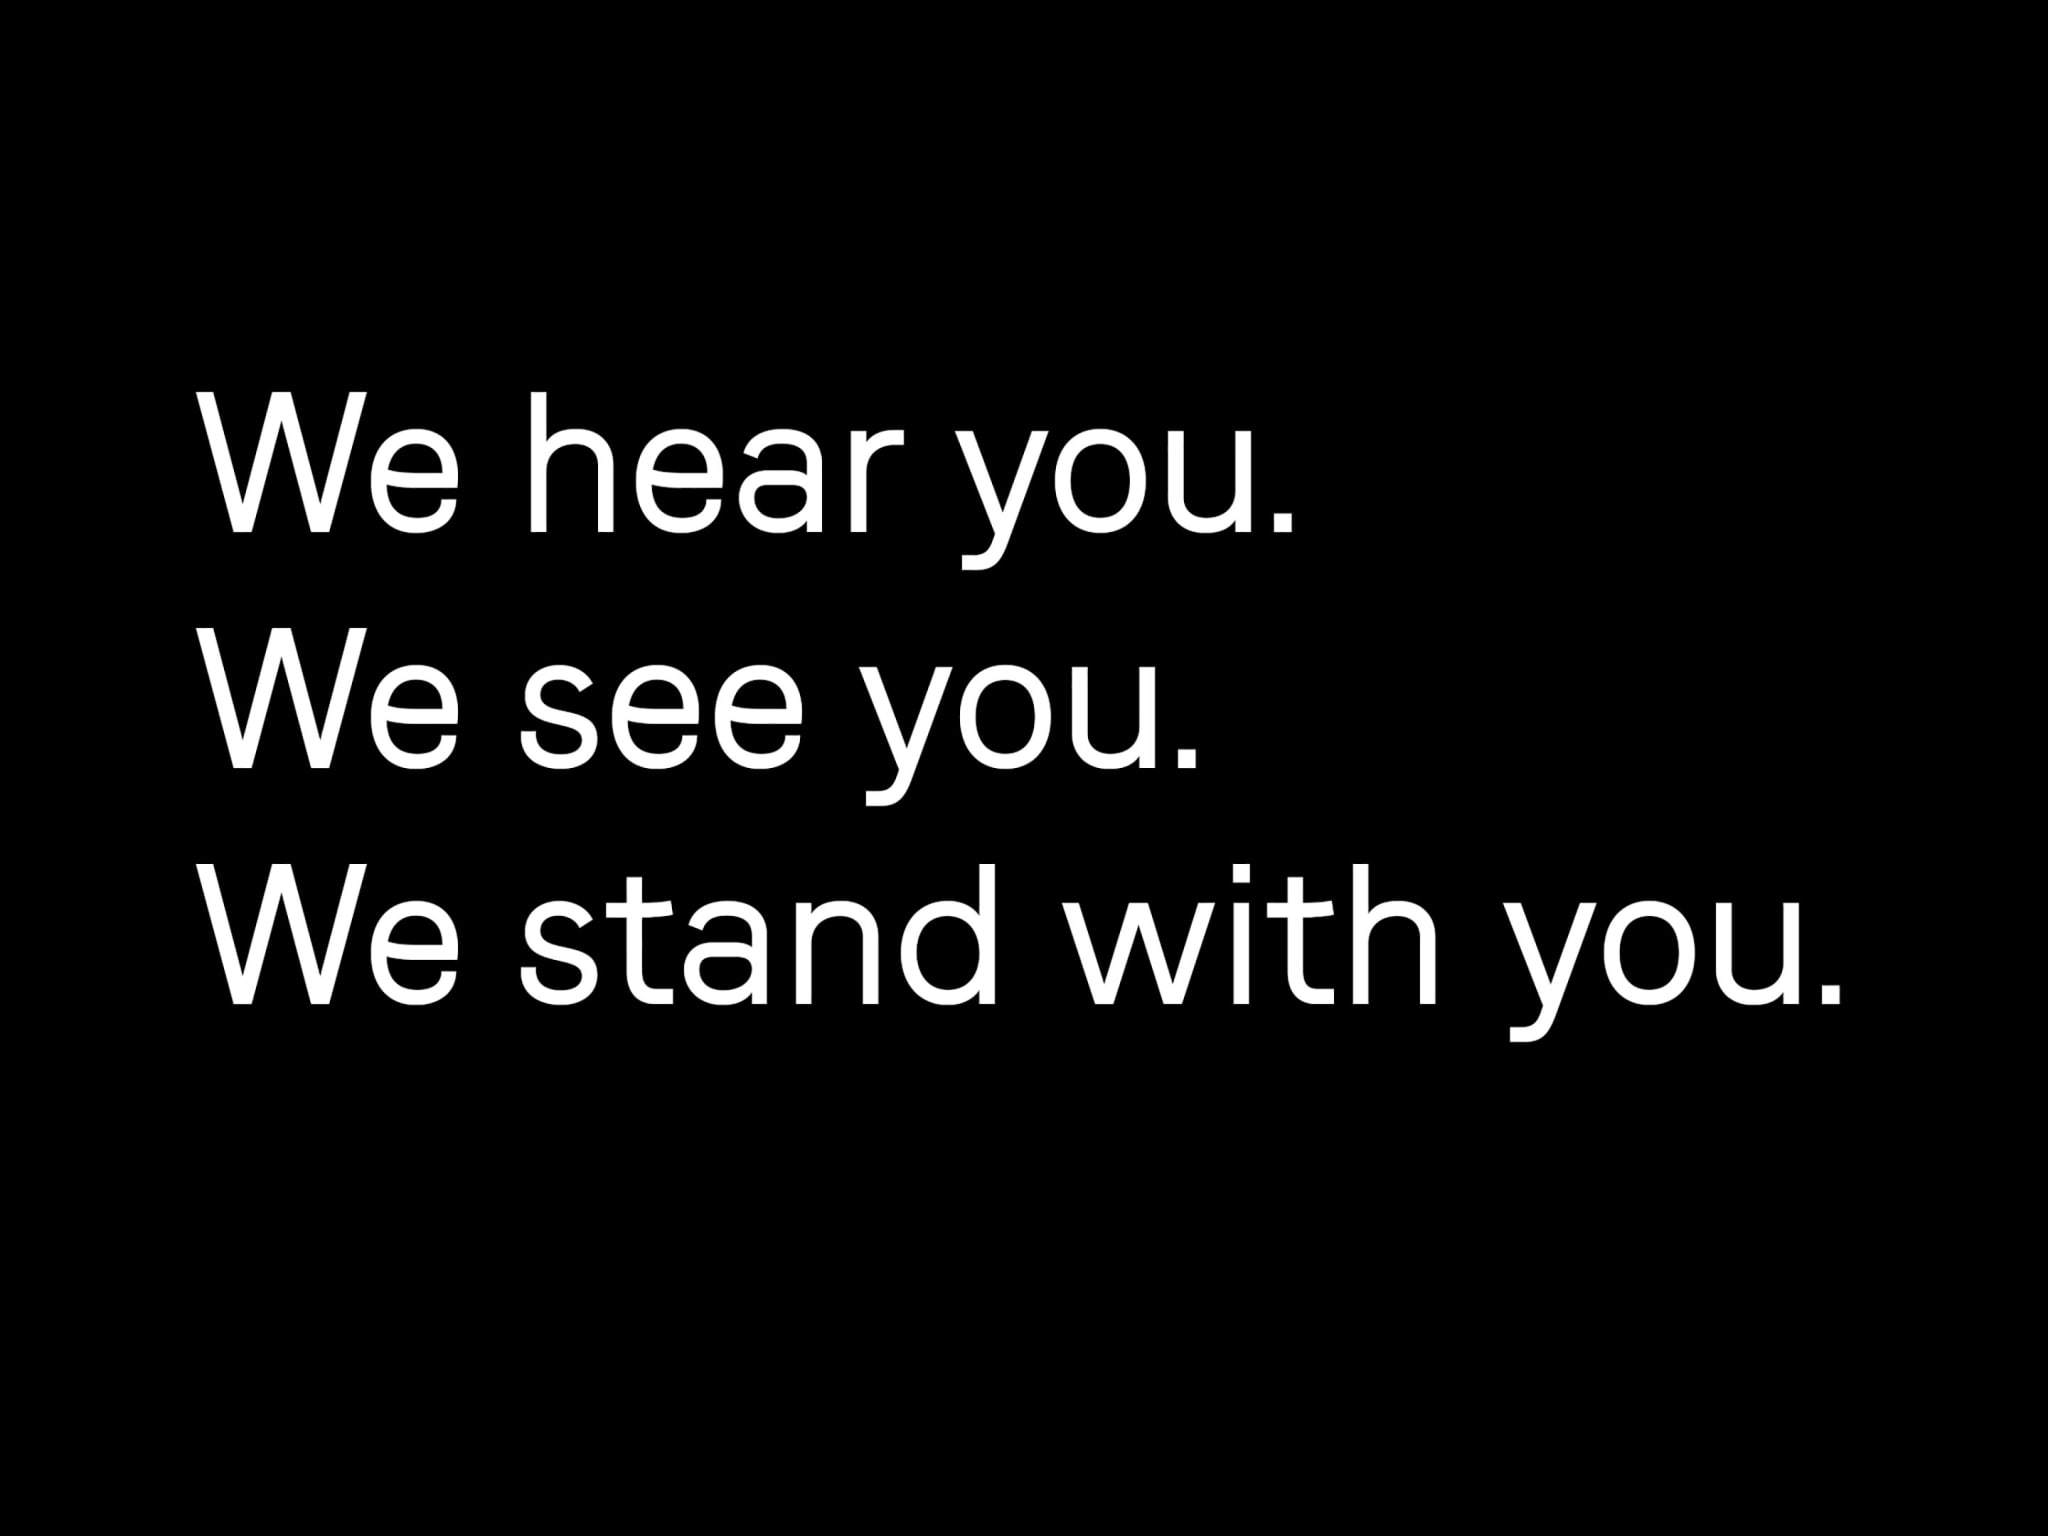 A statement saying We hear you we see you we stand by you.